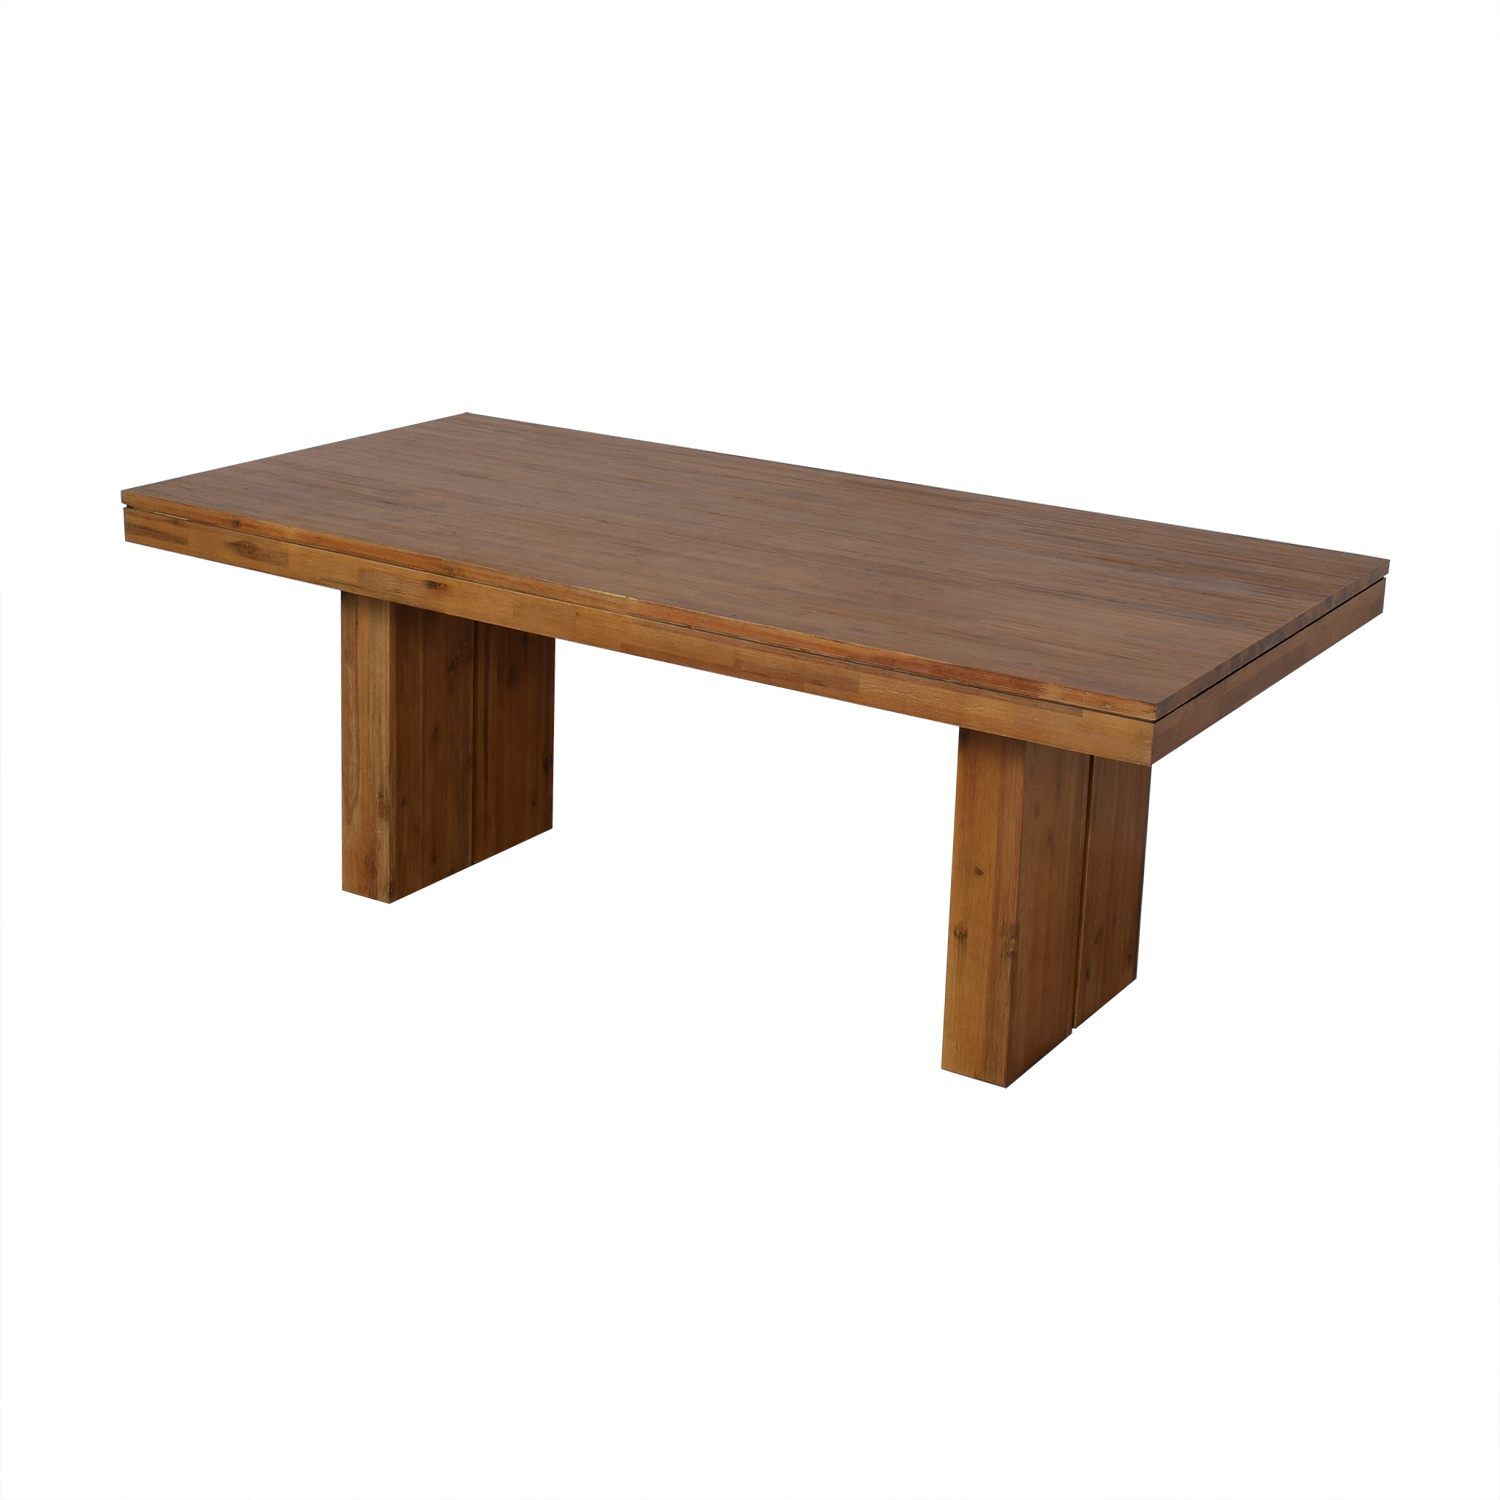 Cresent Furniture Cresent Fine Furniture Dining Table pa